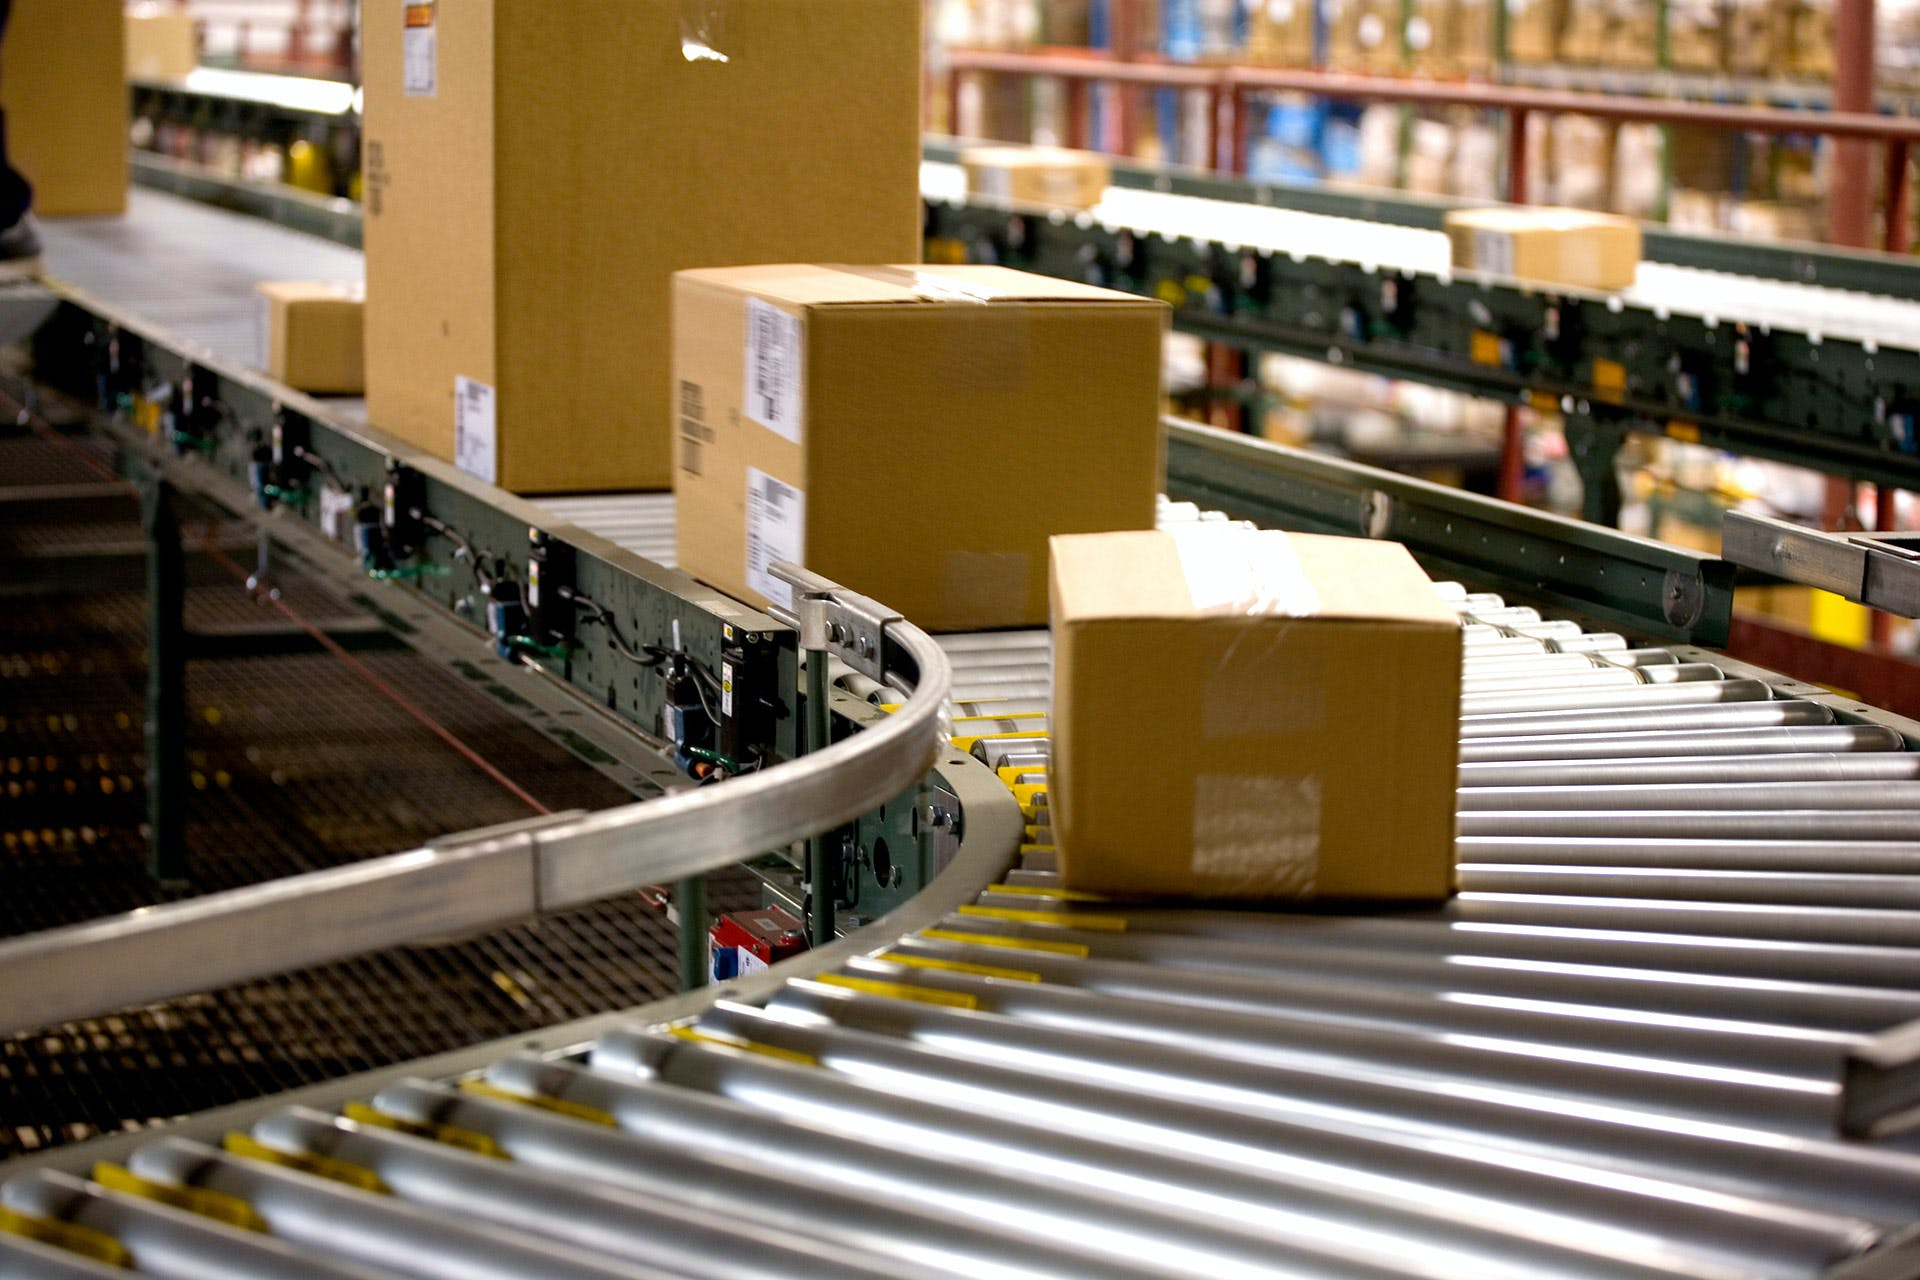 Many packages run on conveyor belts in the incoming goods area